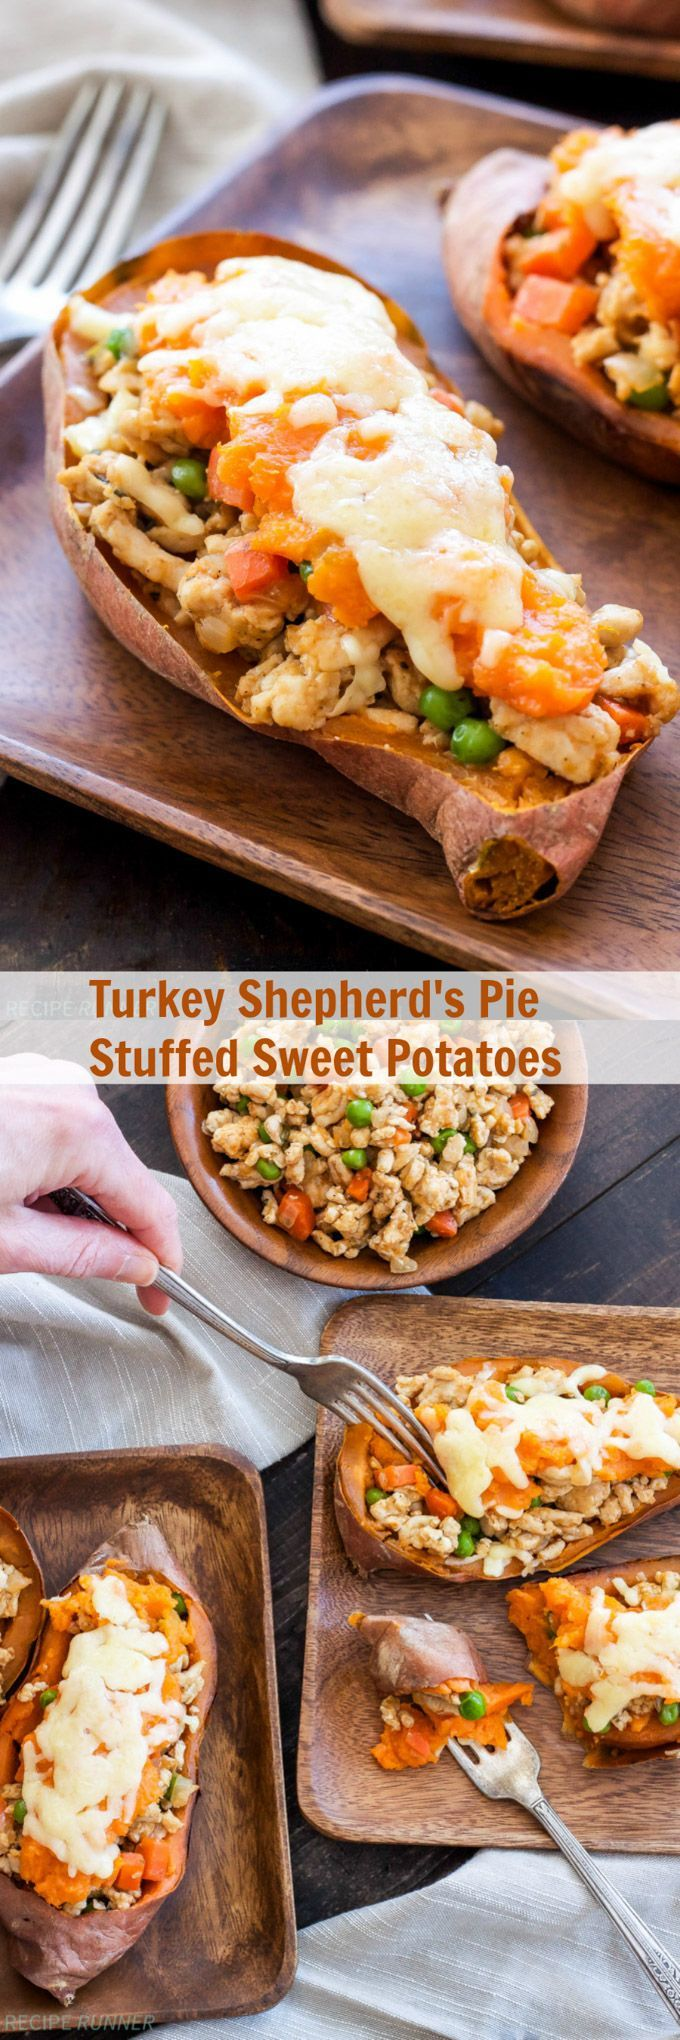 17 best ideas about stuffed sweet potatoes on pinterest sweet potato skins healthy dinner for. Black Bedroom Furniture Sets. Home Design Ideas